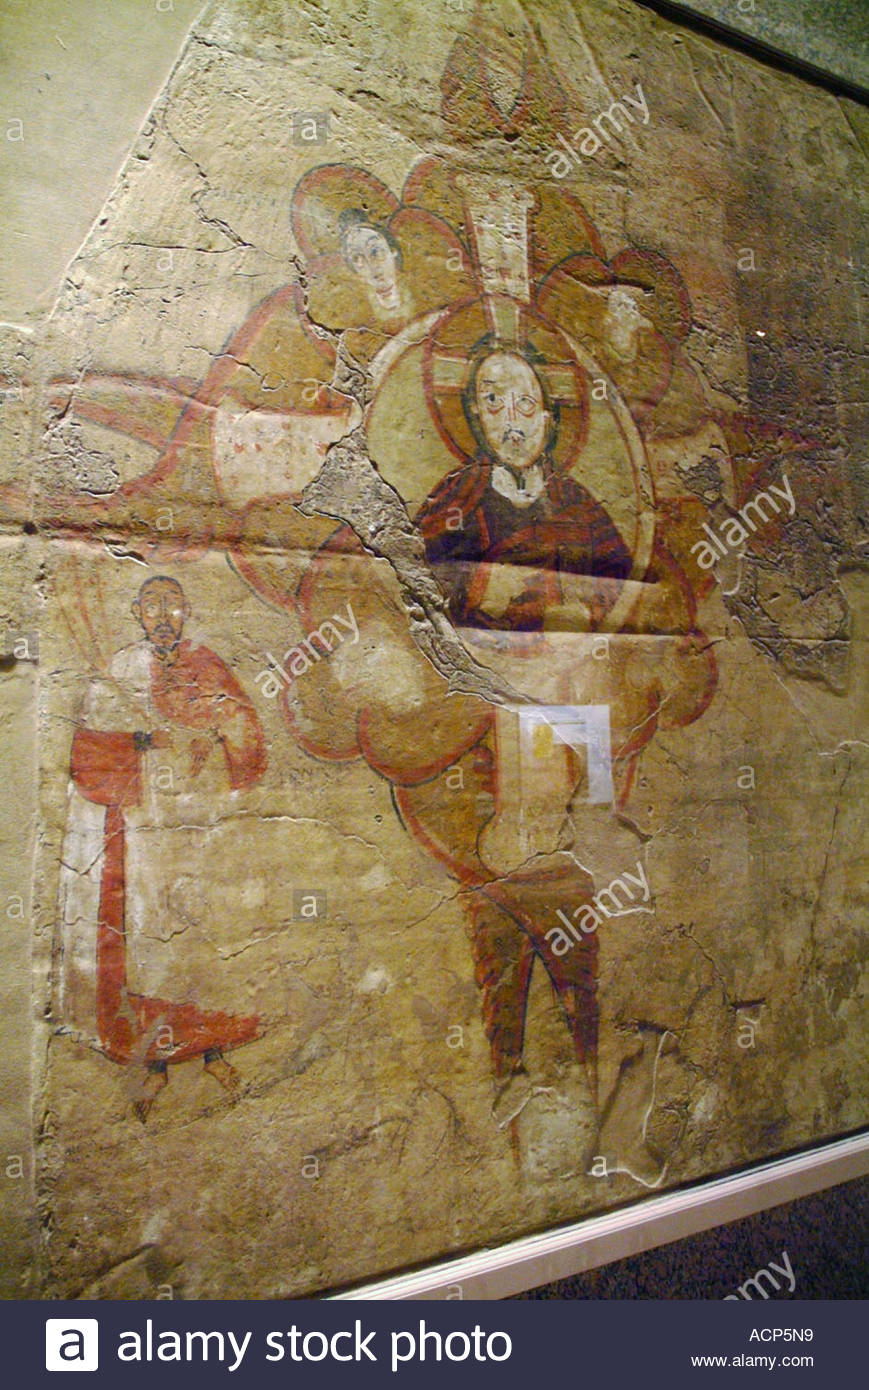 Early christian symbolism in wall mural exhibited in nubian museum early christian symbolism in wall mural exhibited in nubian museum aswan buycottarizona Choice Image